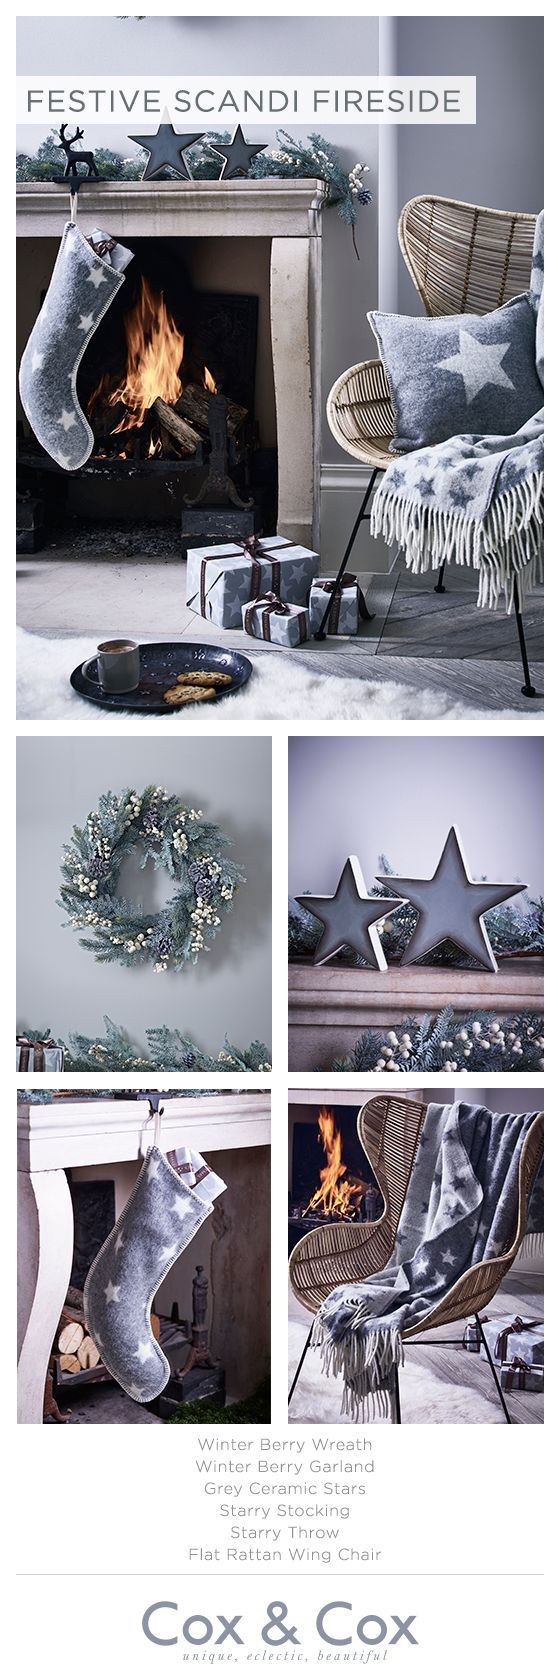 Wedding decorations gold and pink december 2018  best uTis the season dammit images on Pinterest